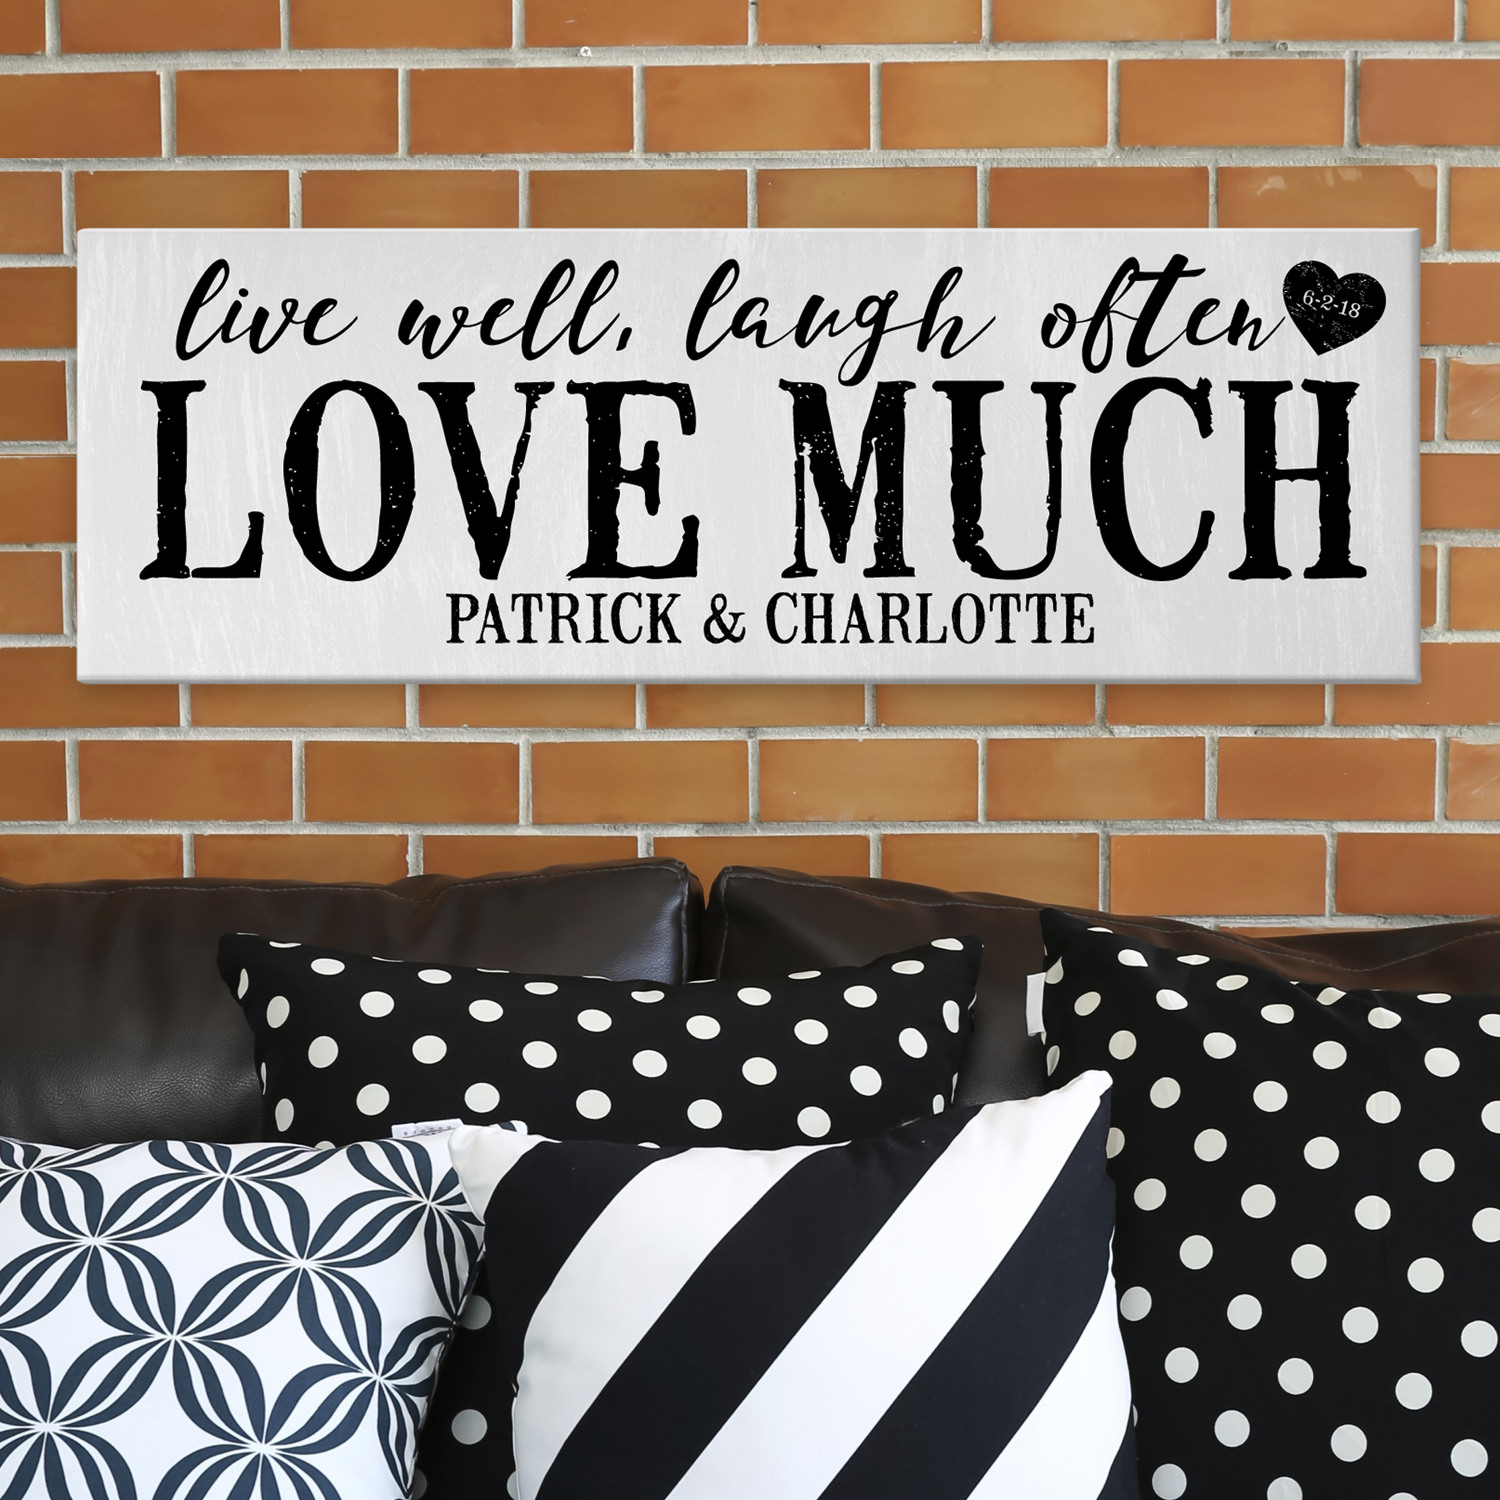 Personalized Love Much Canvas